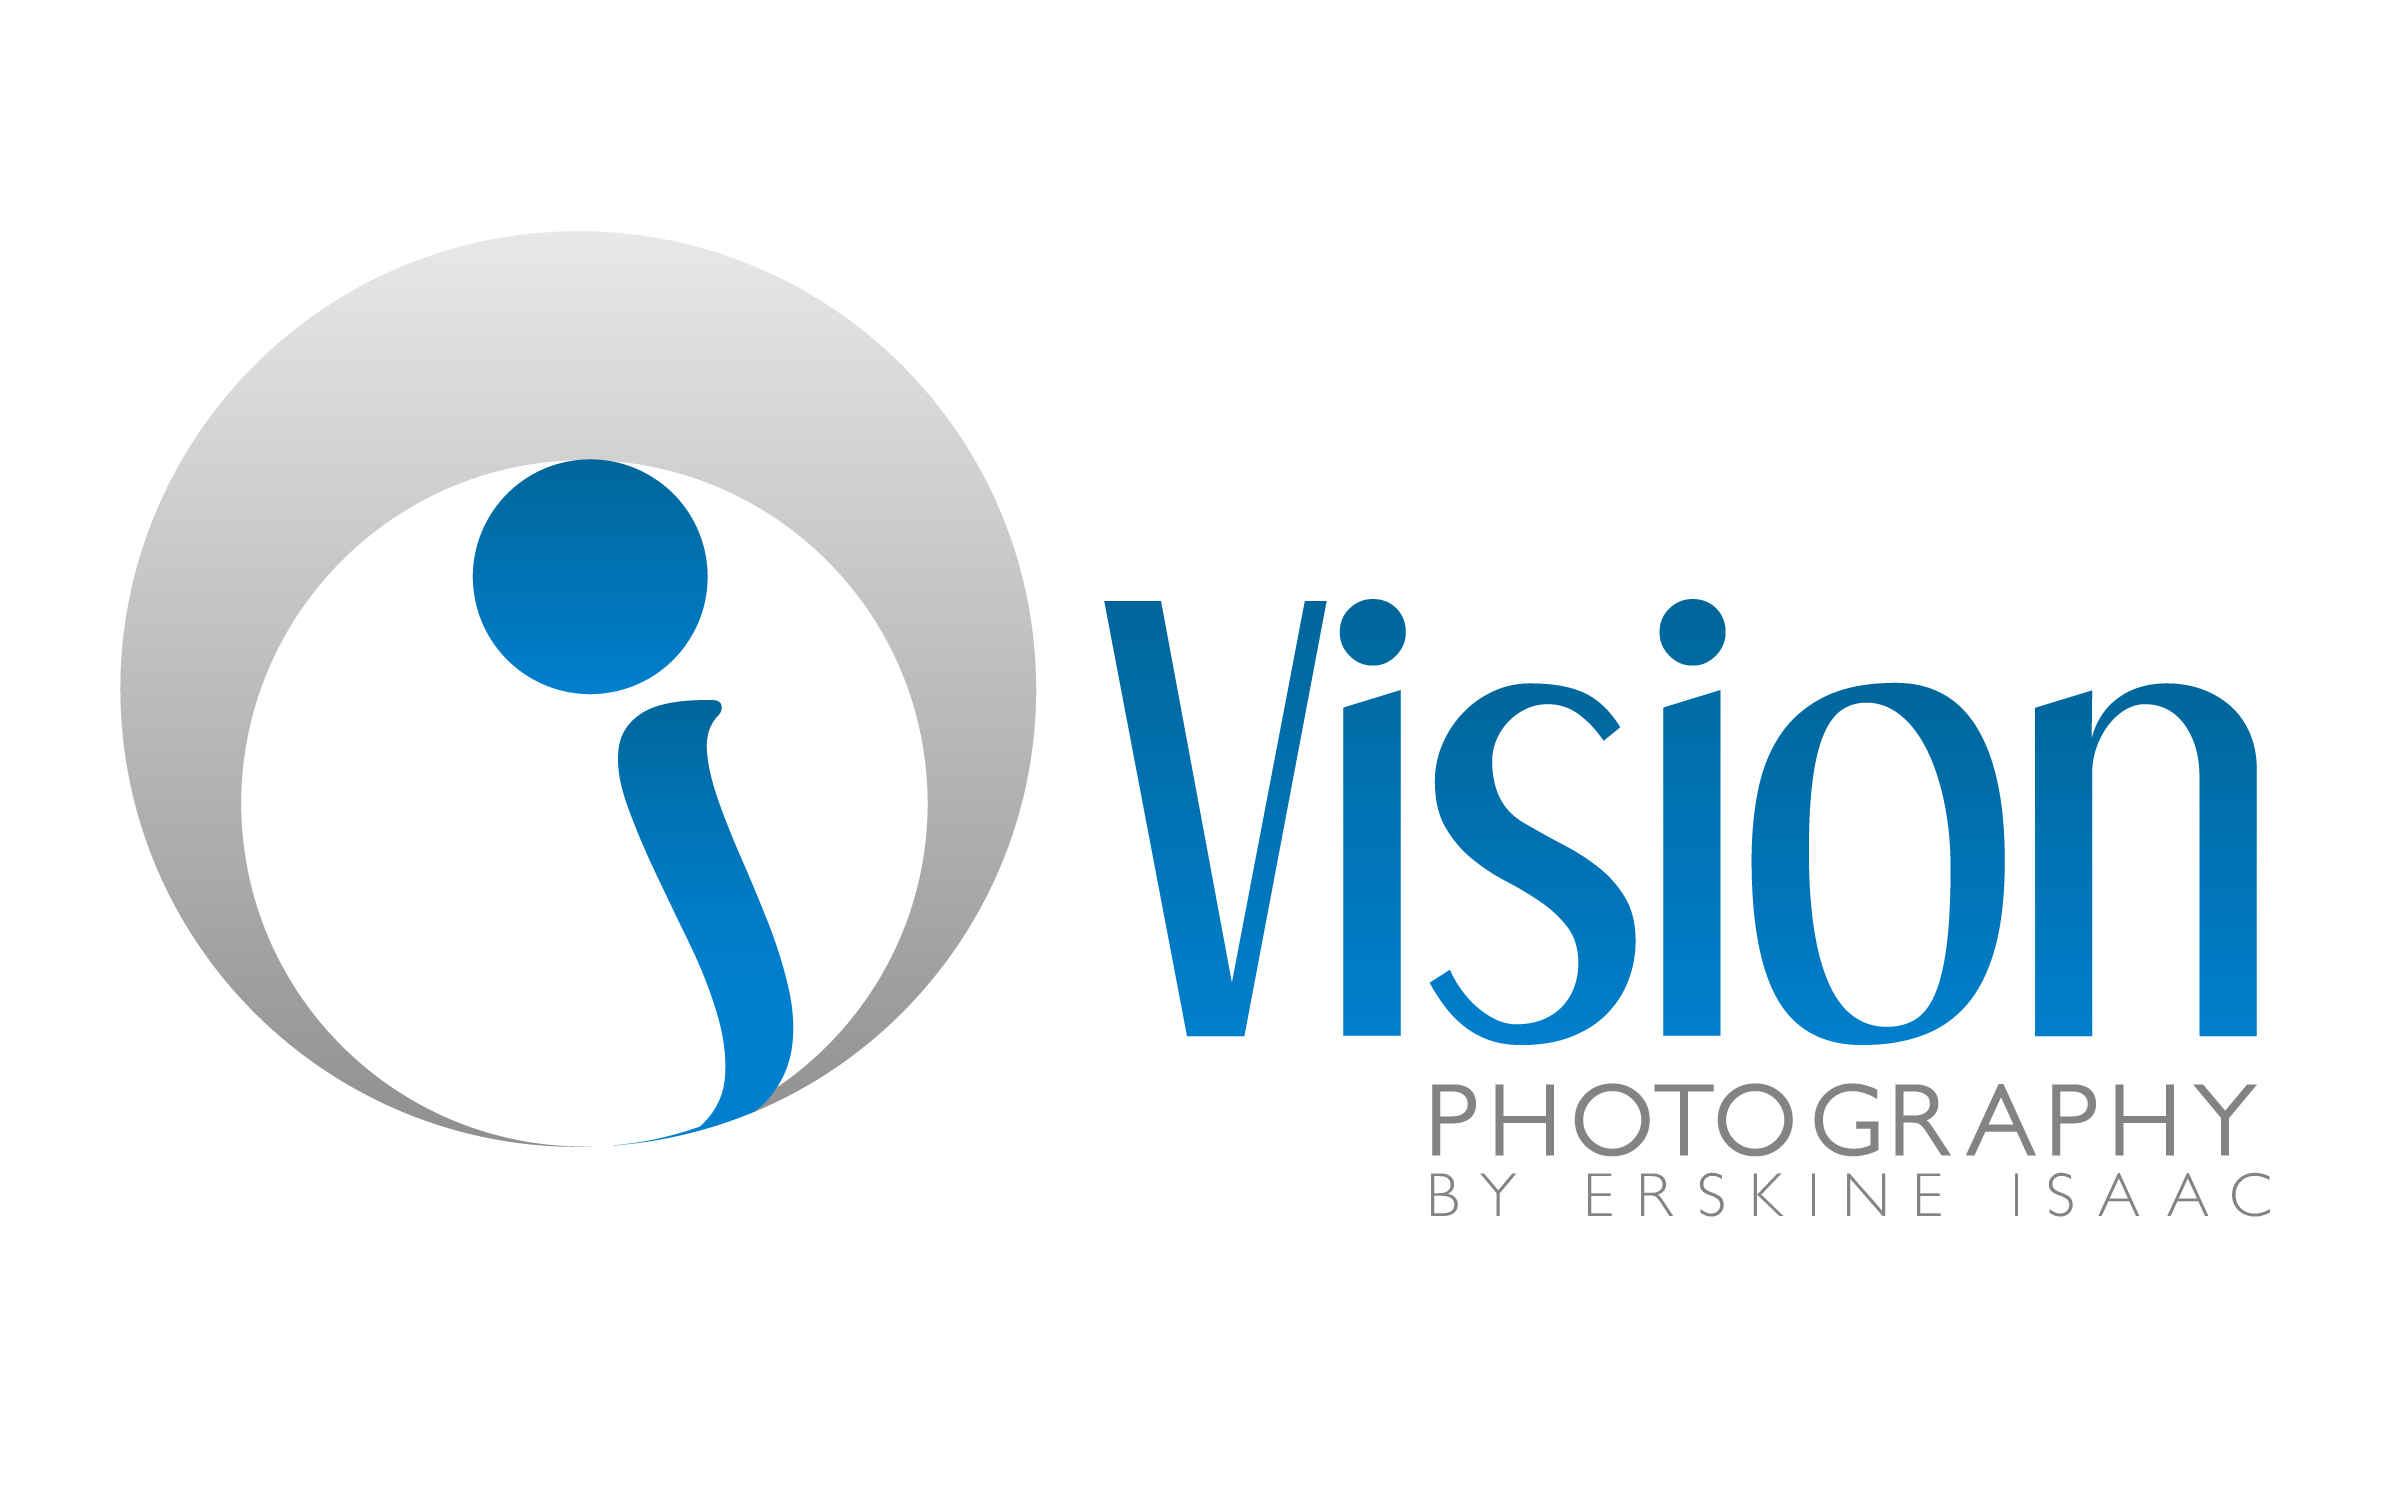 iVision Photo